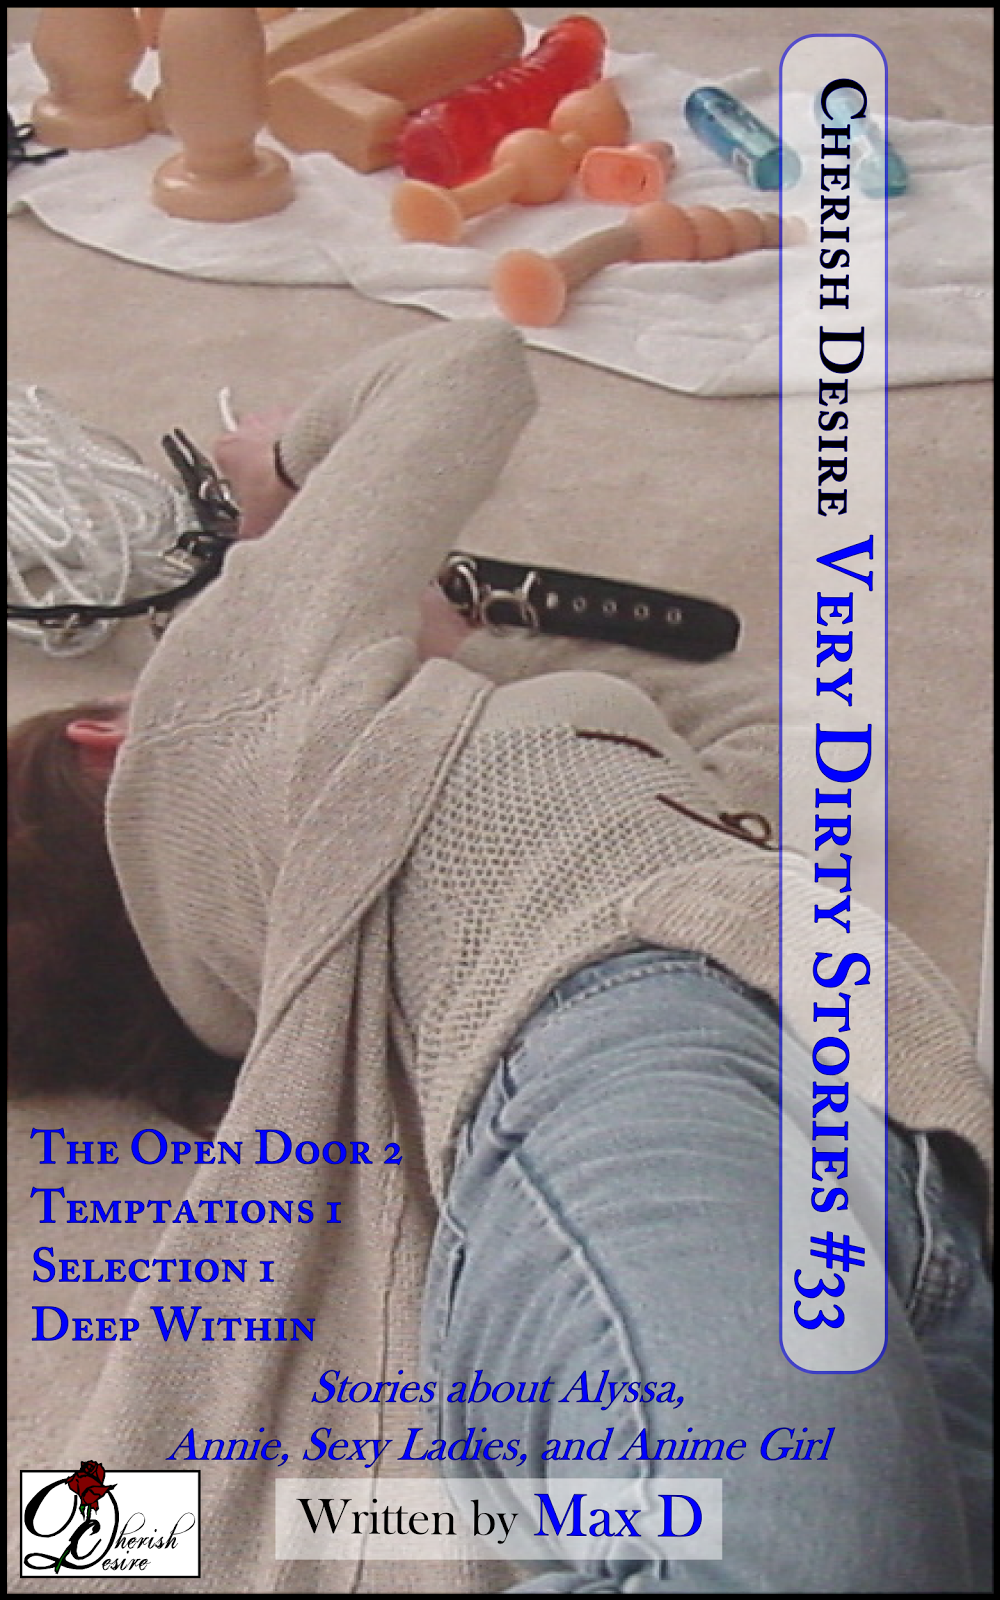 Cherish Desire: Very Dirty Stories #33, Max D, erotica